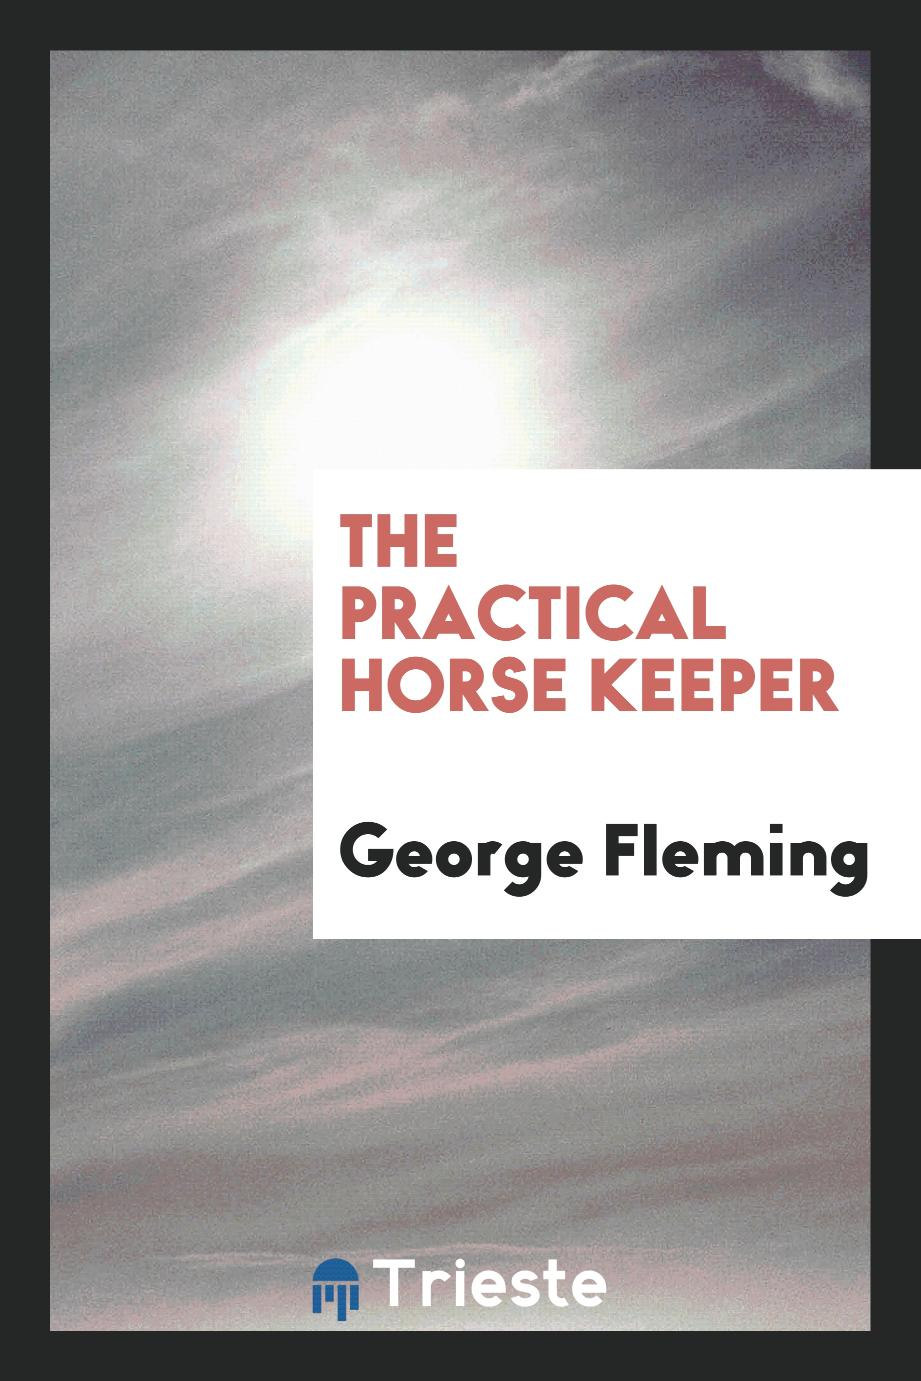 The practical horse keeper